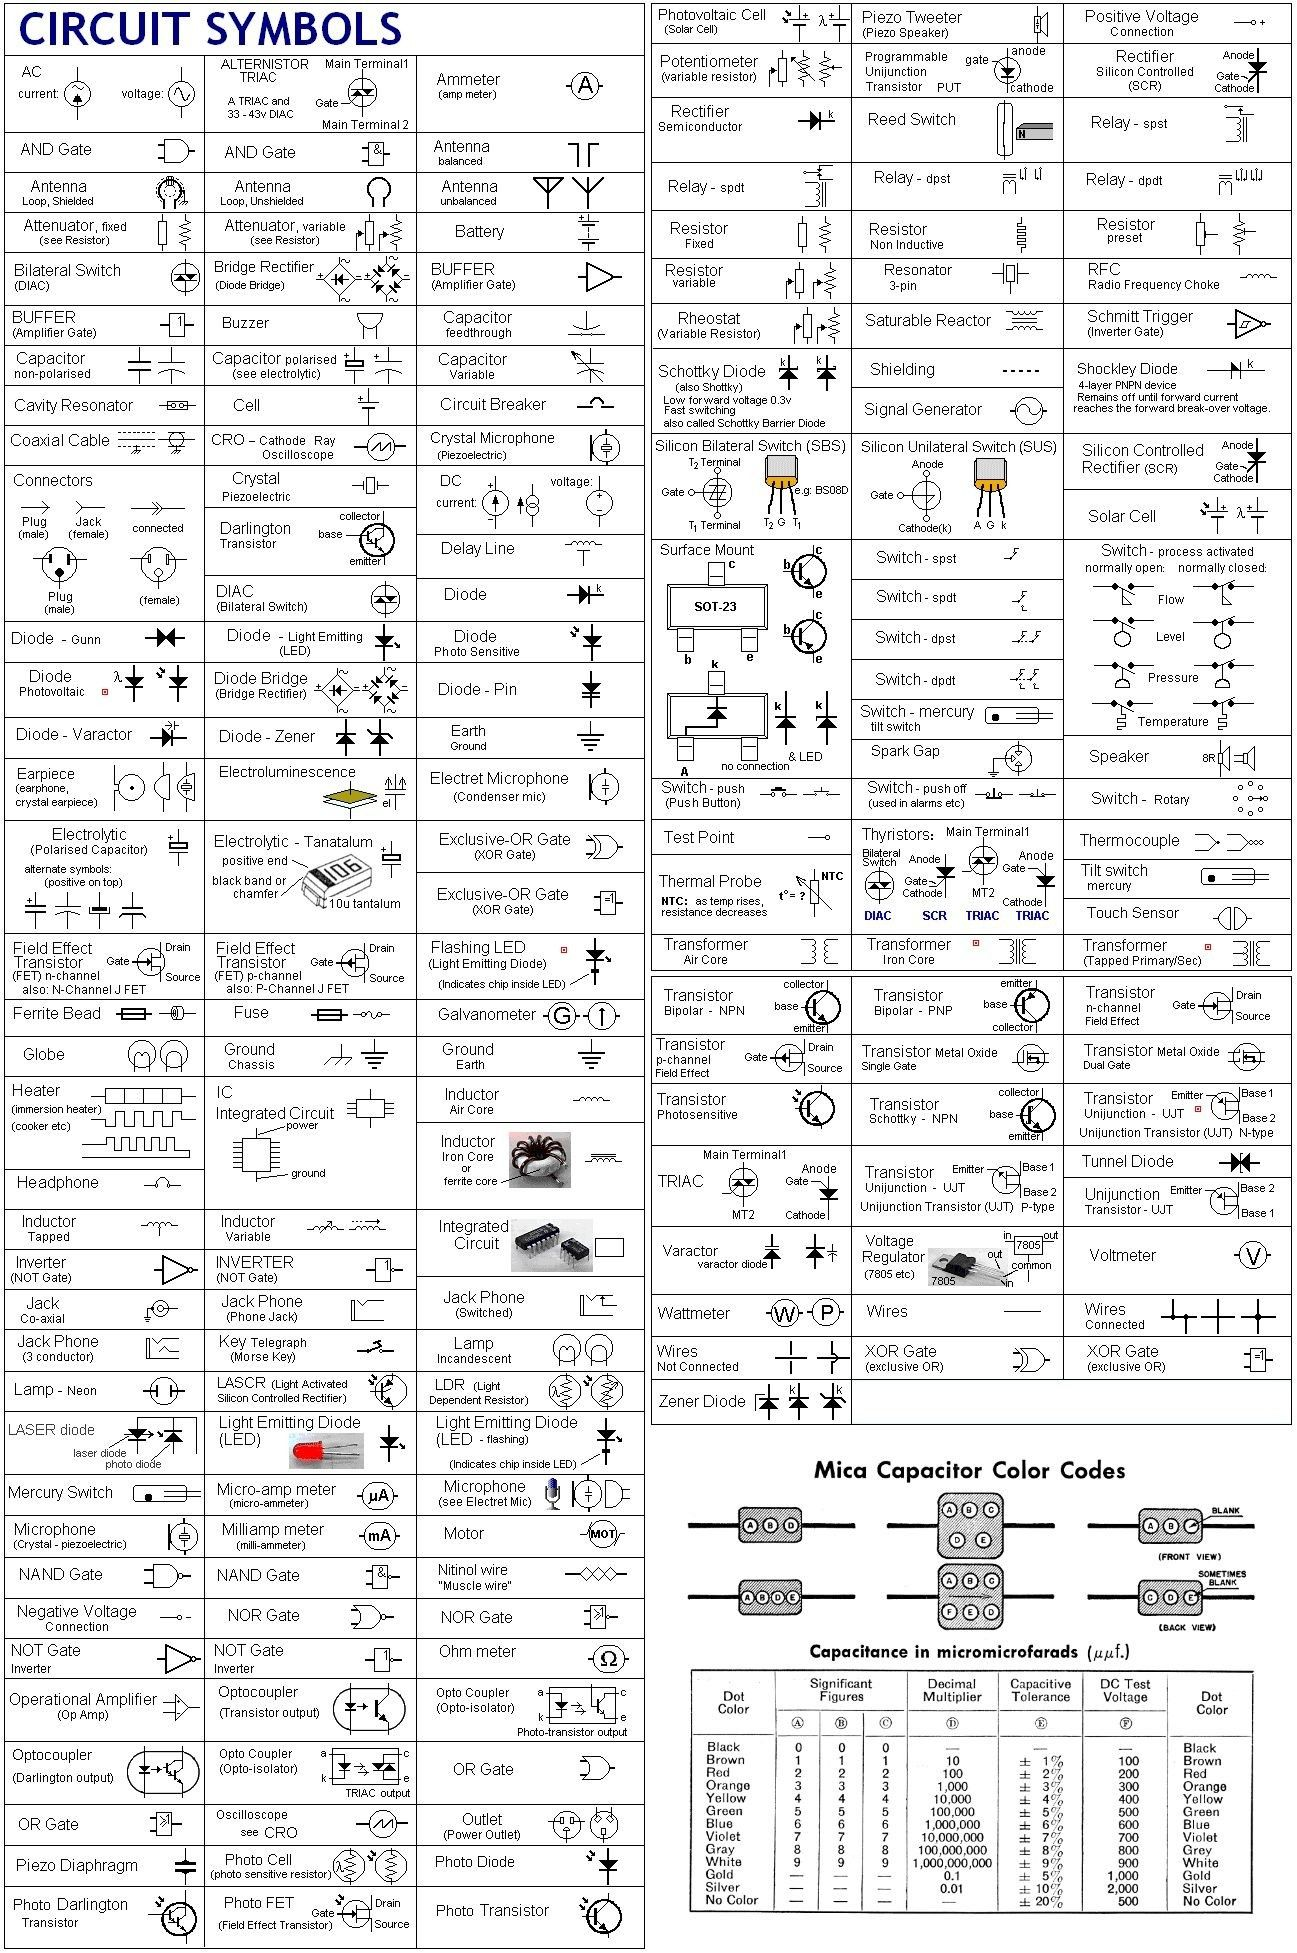 6 Inspiring Circuits And Symbols Worksheet Answers In 2020 Electronic Schematics Electric Circuit Electronics Basics